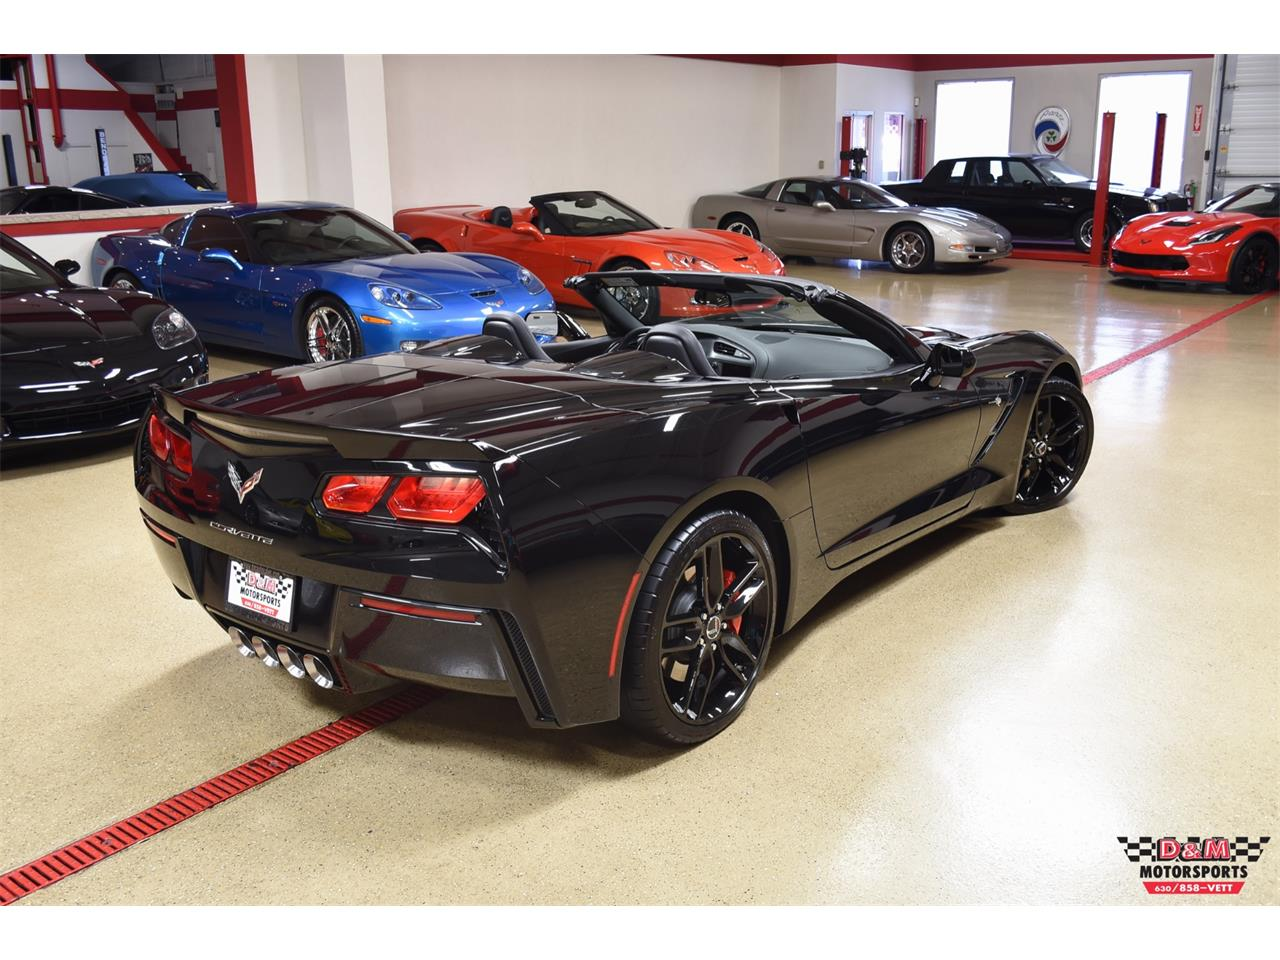 Large Picture of 2015 Chevrolet Corvette - $50,995.00 Offered by D & M Motorsports - PZ21